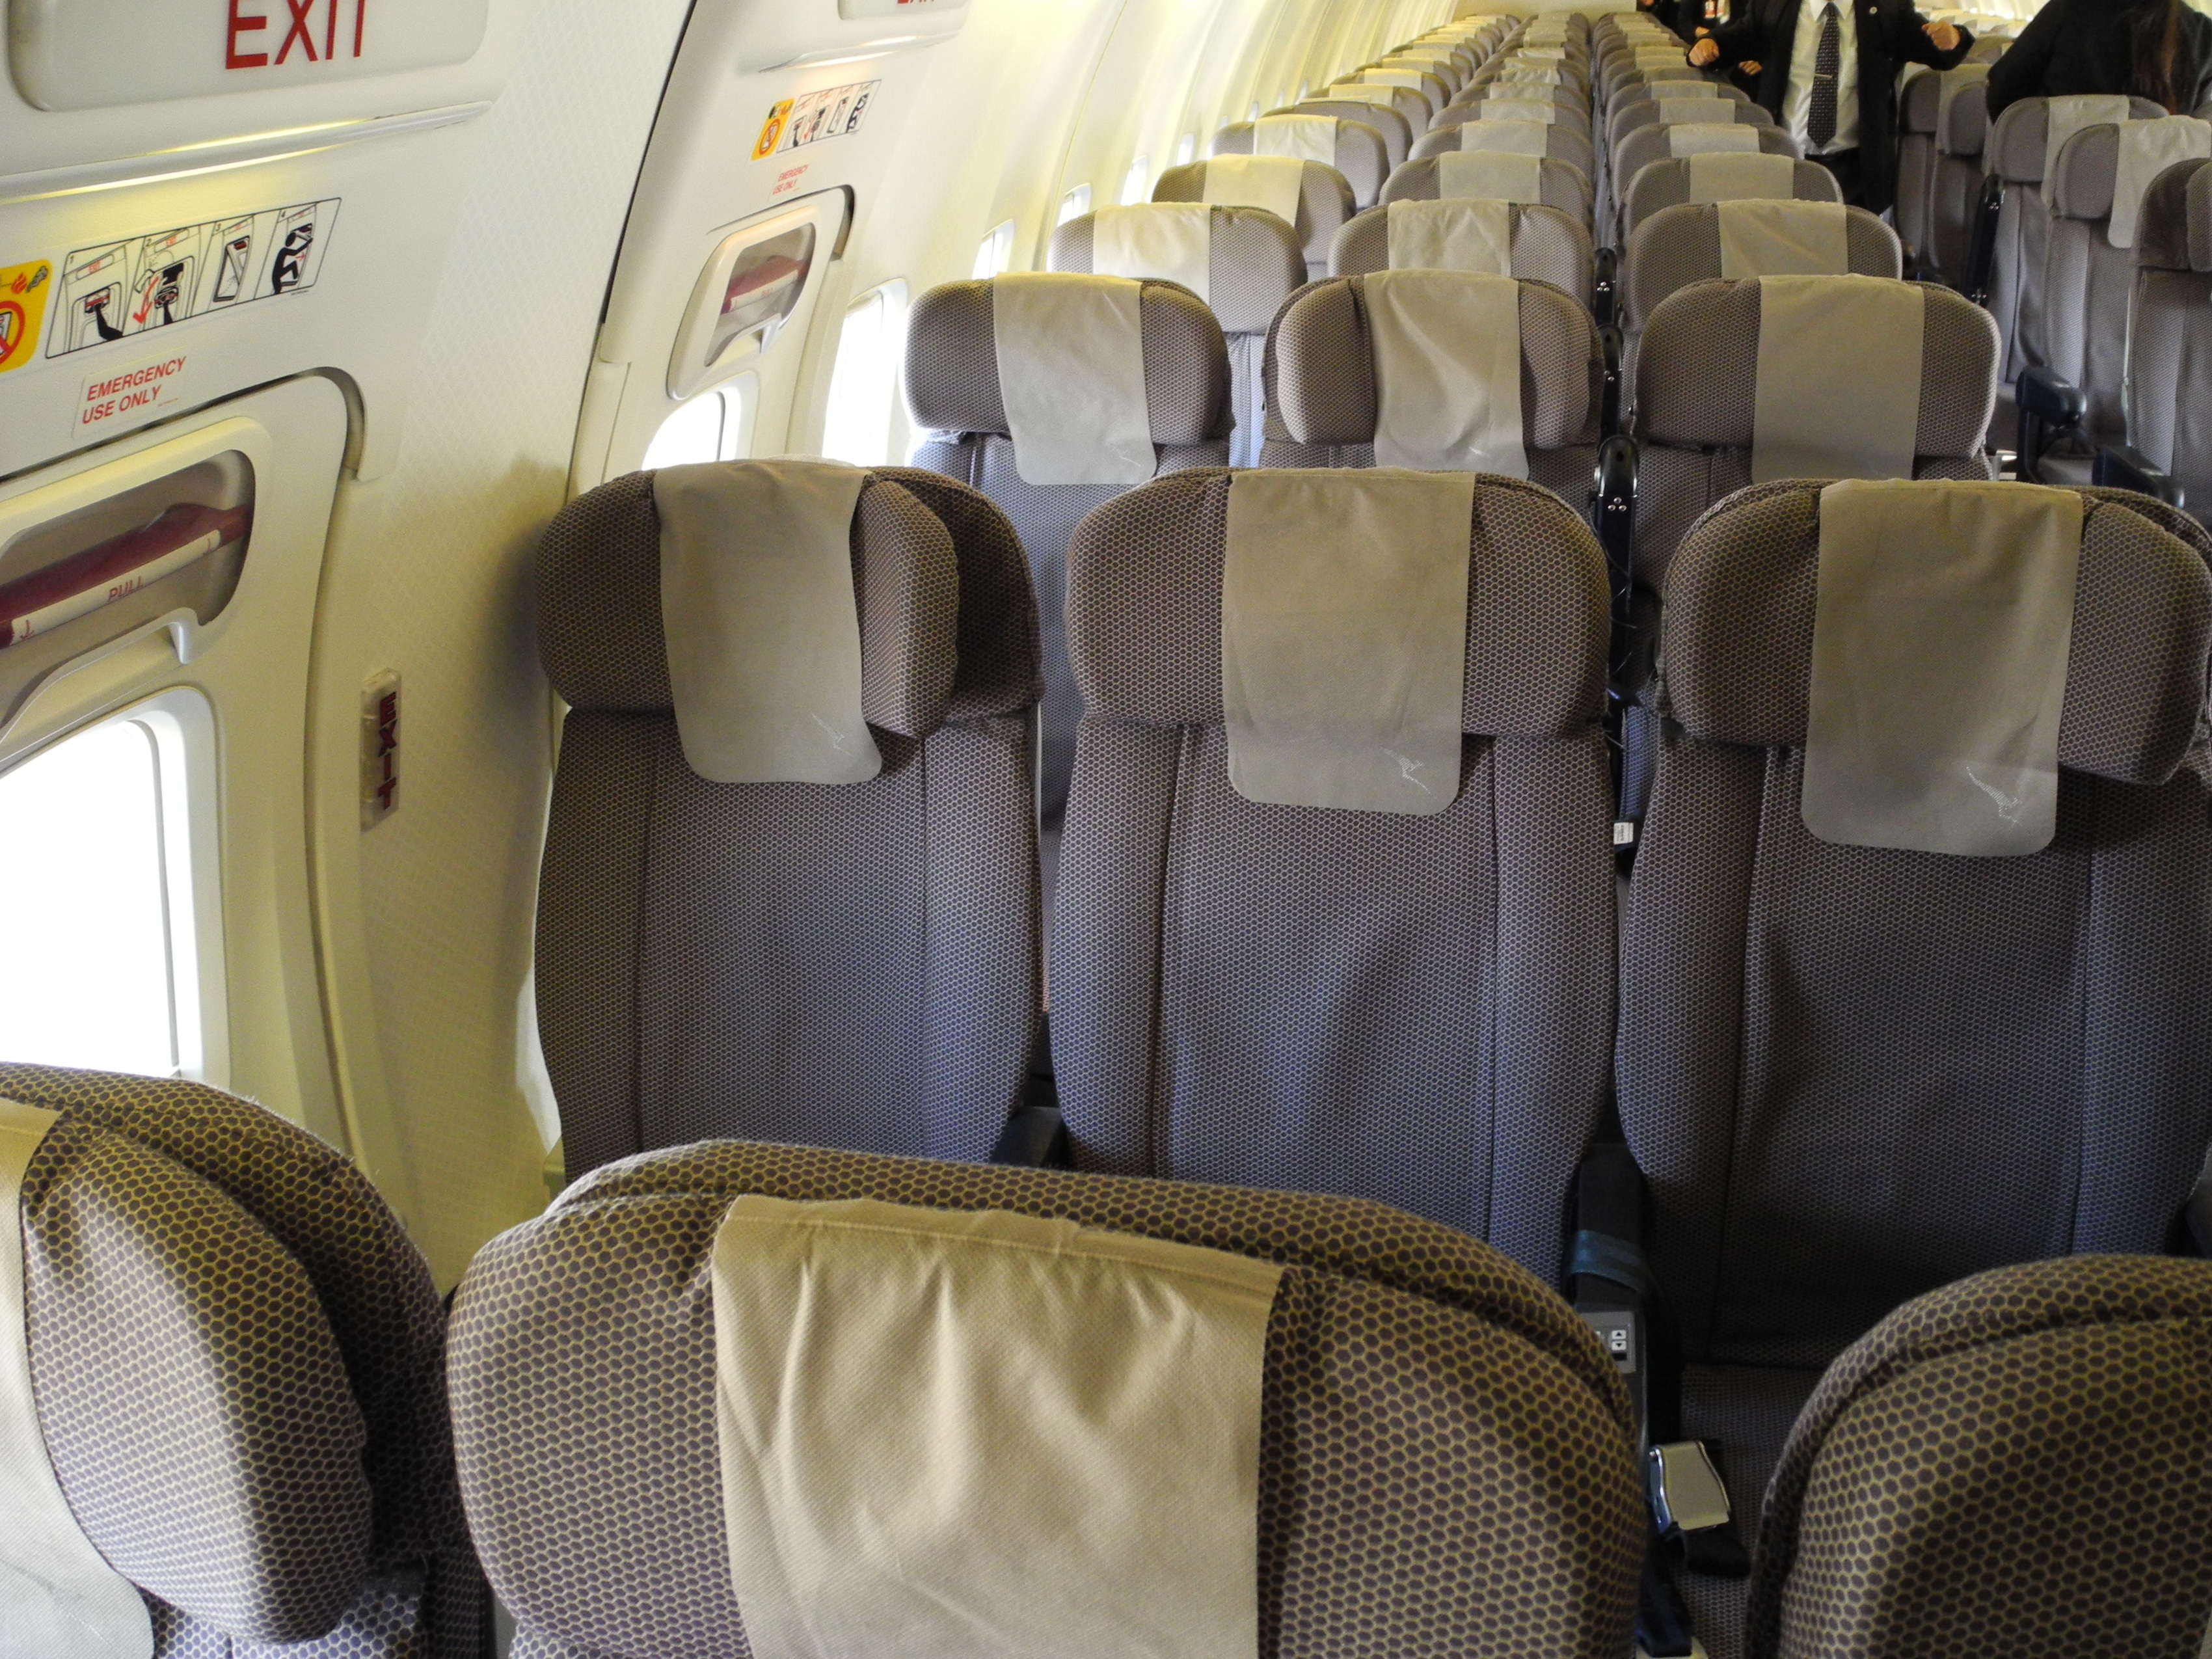 Why Airplane Seats Don't Face Backwards — Even Though It's Safer